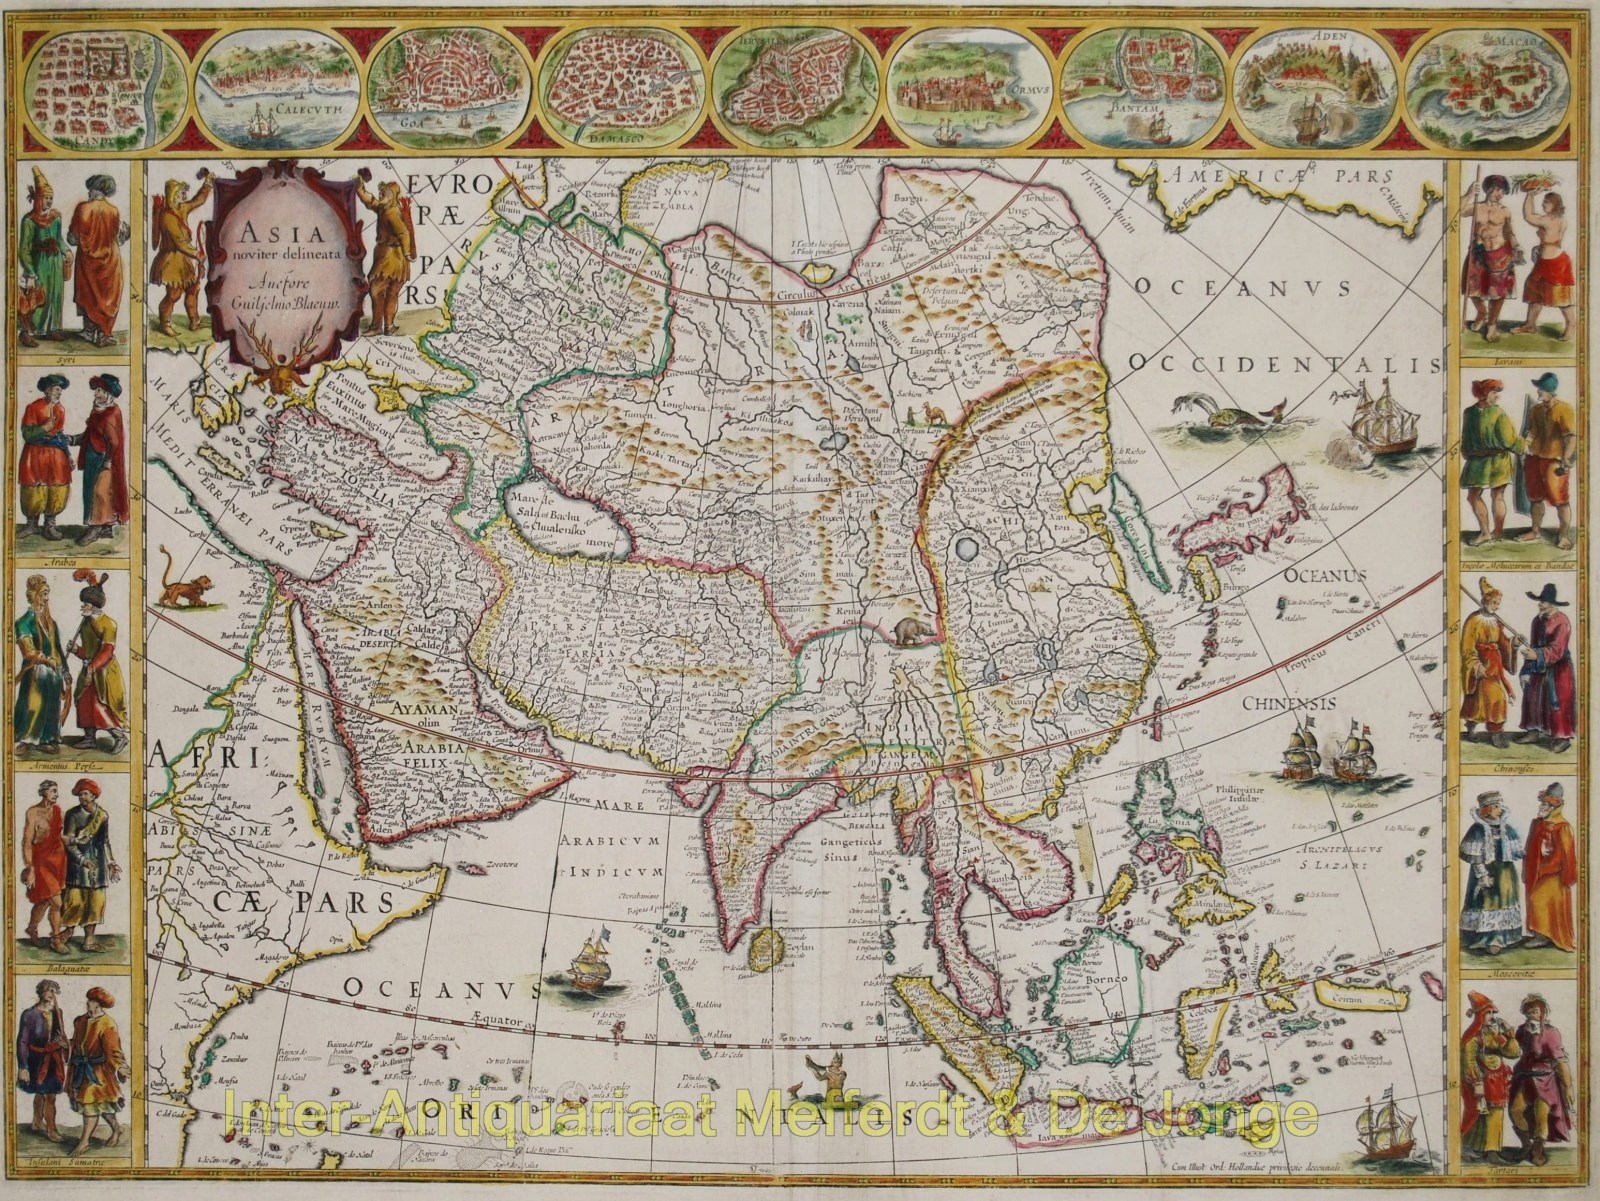 Asia map - Willem Blaeu